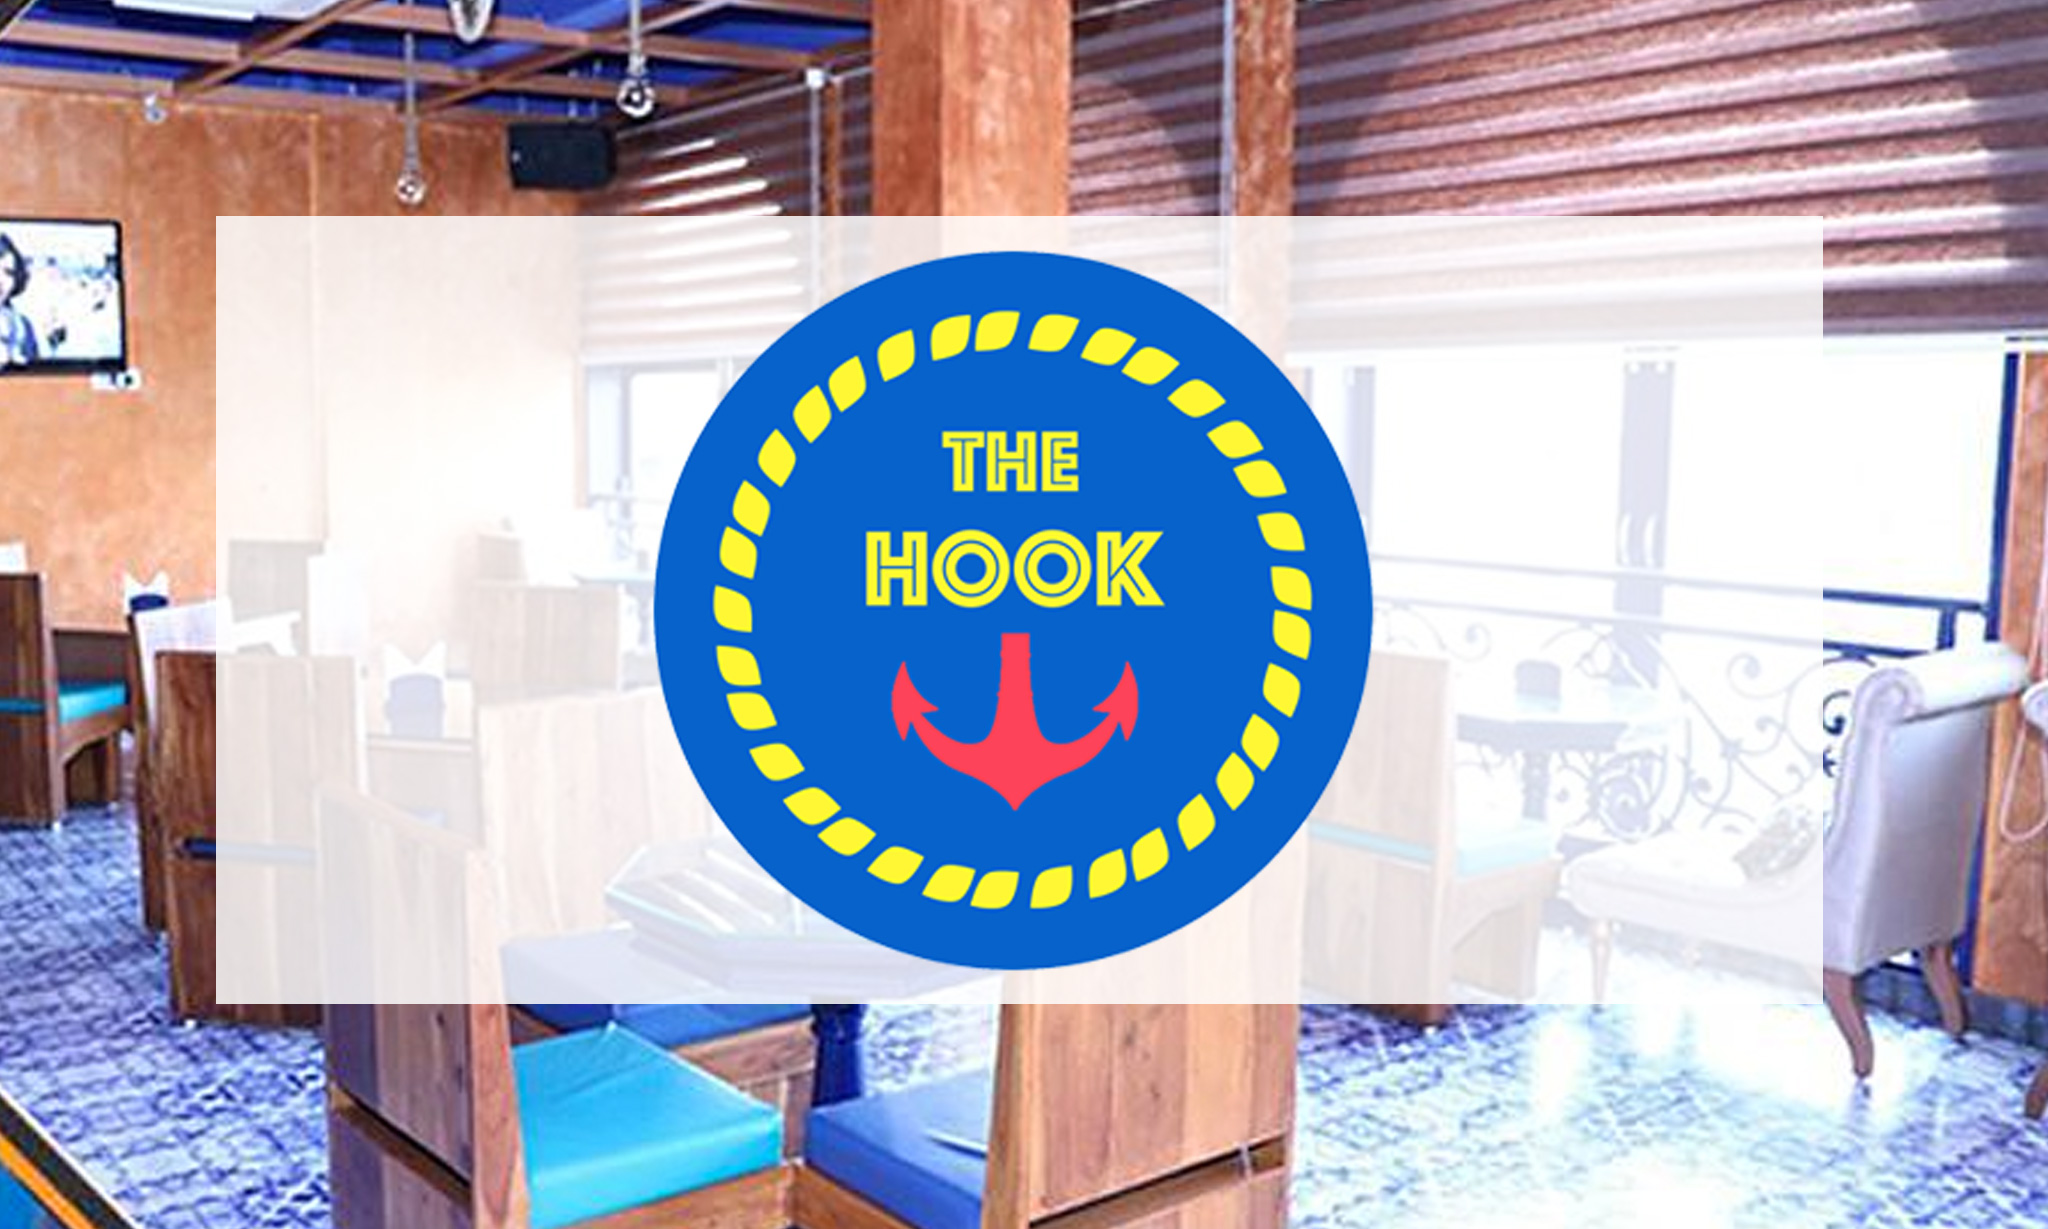 The Hook @ 100% off